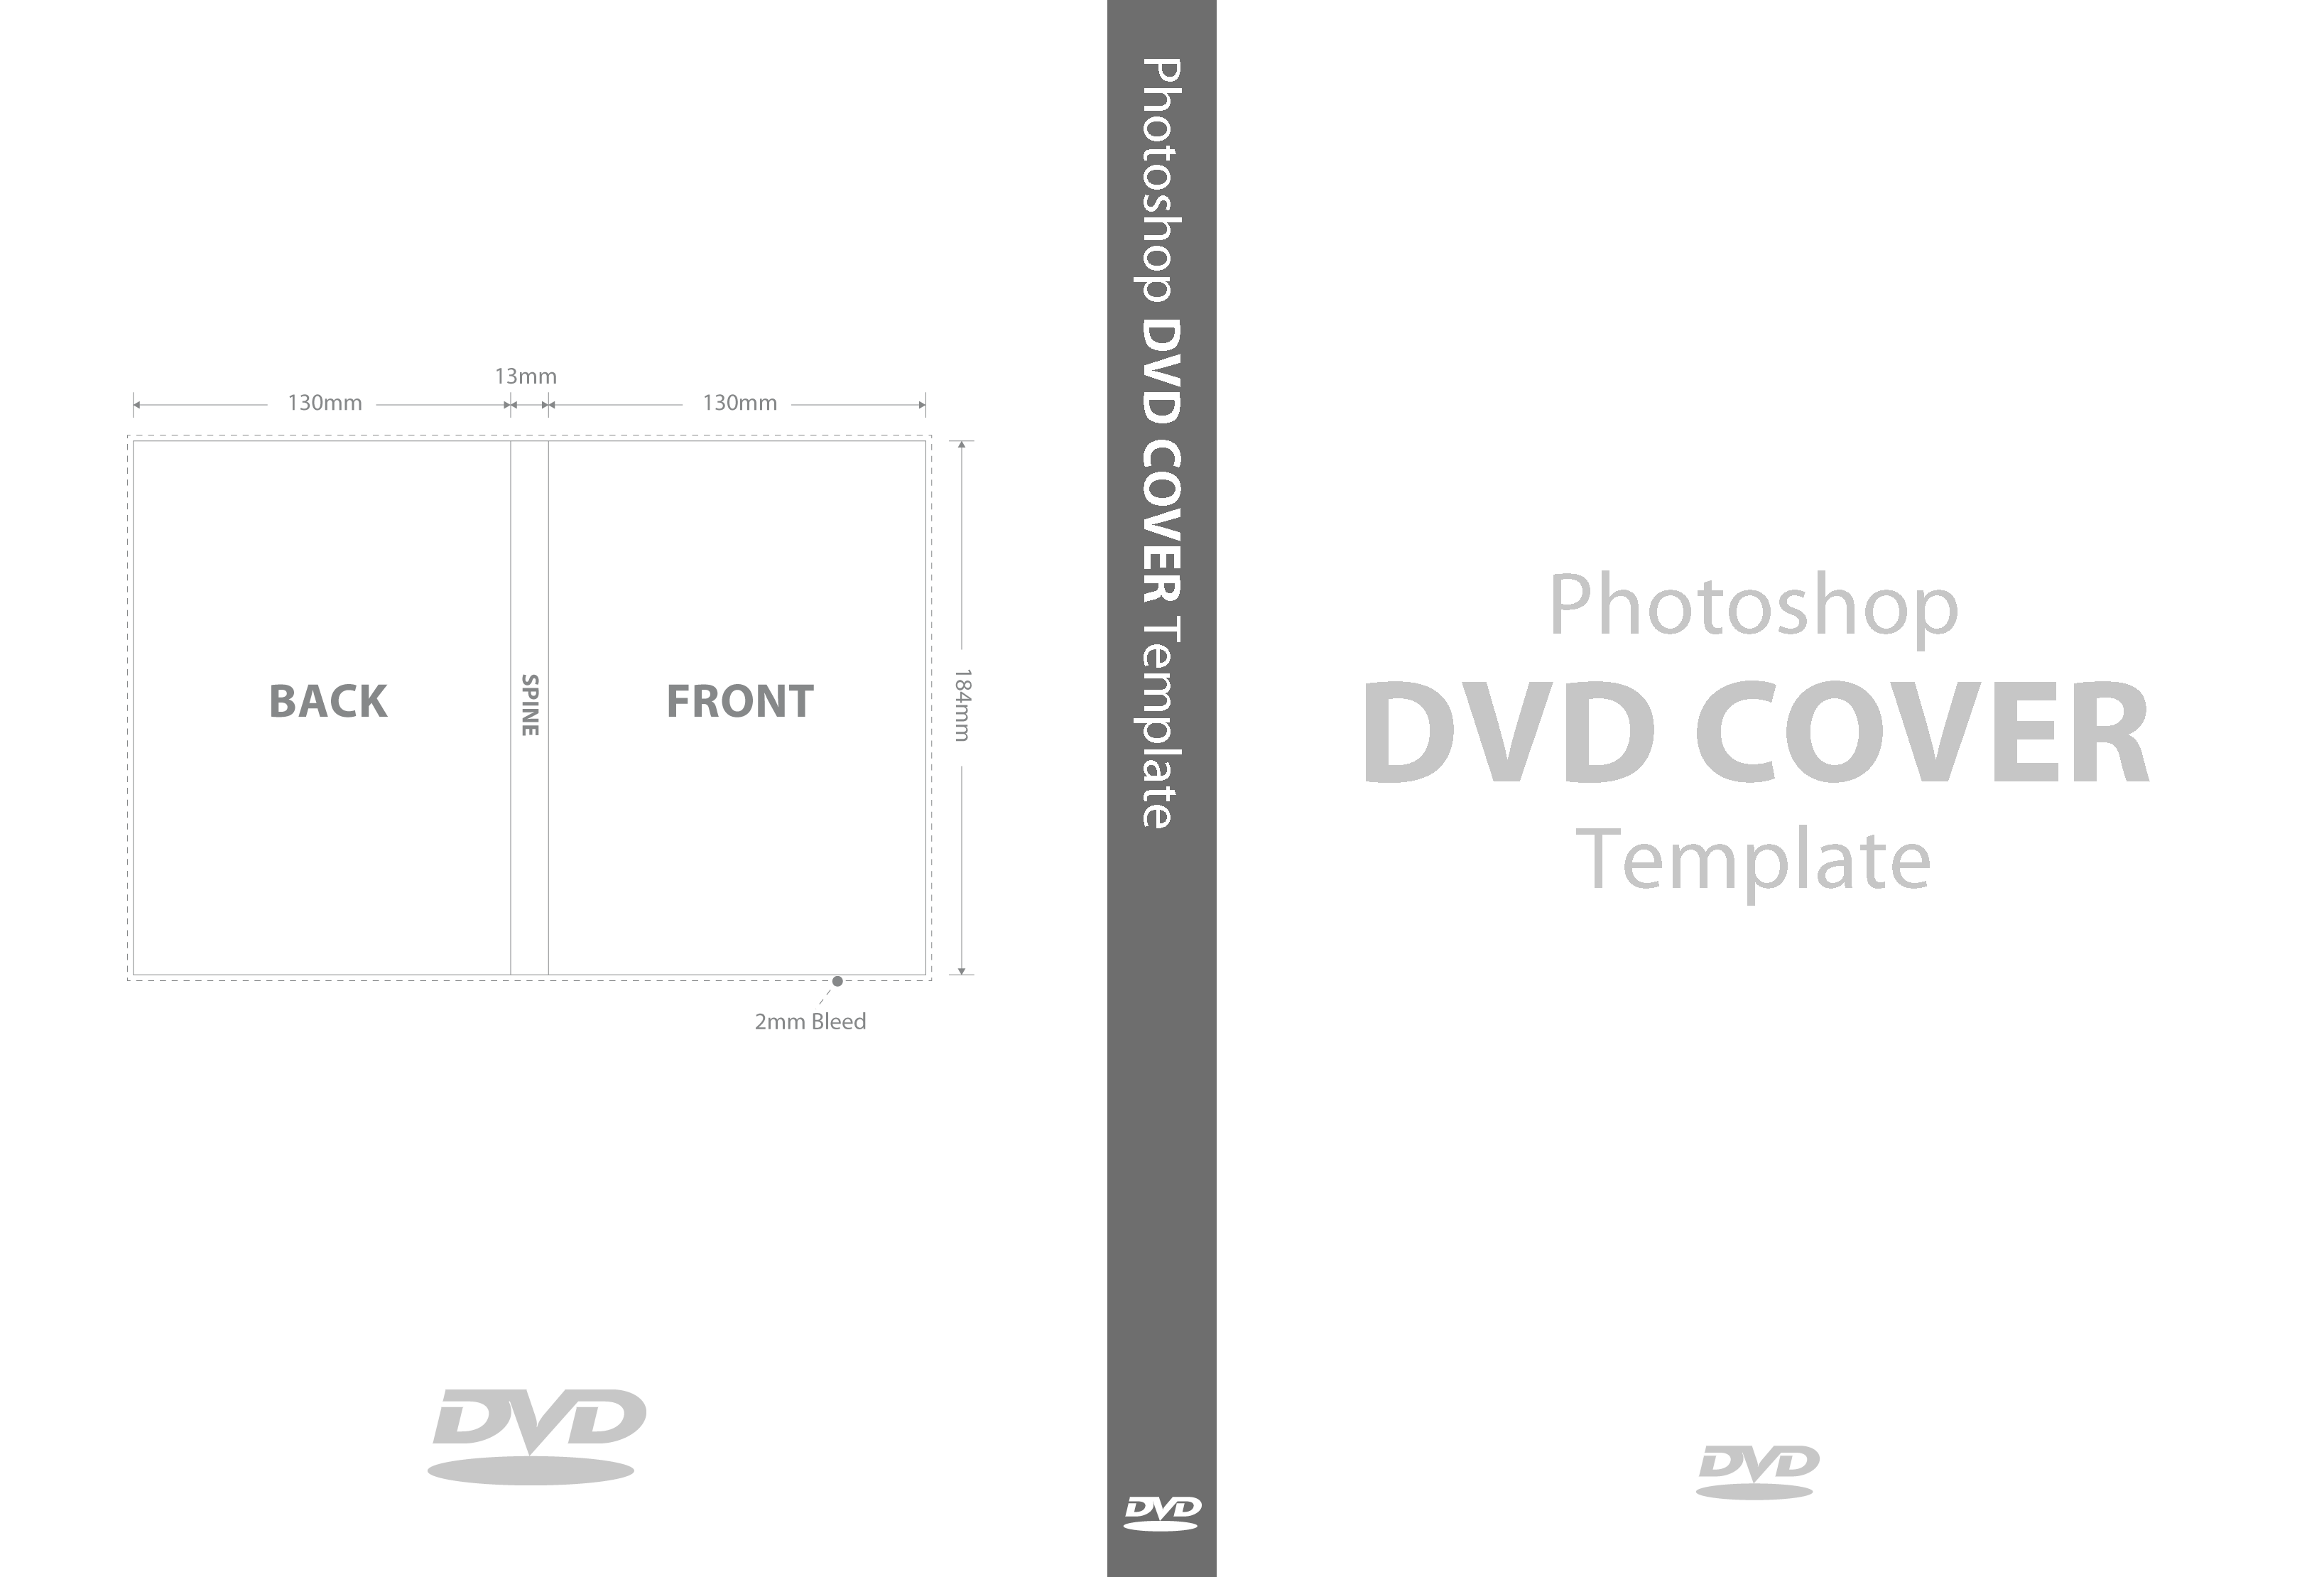 graphic wedding dvd covers - Google Search | cool idea | Pinterest ...